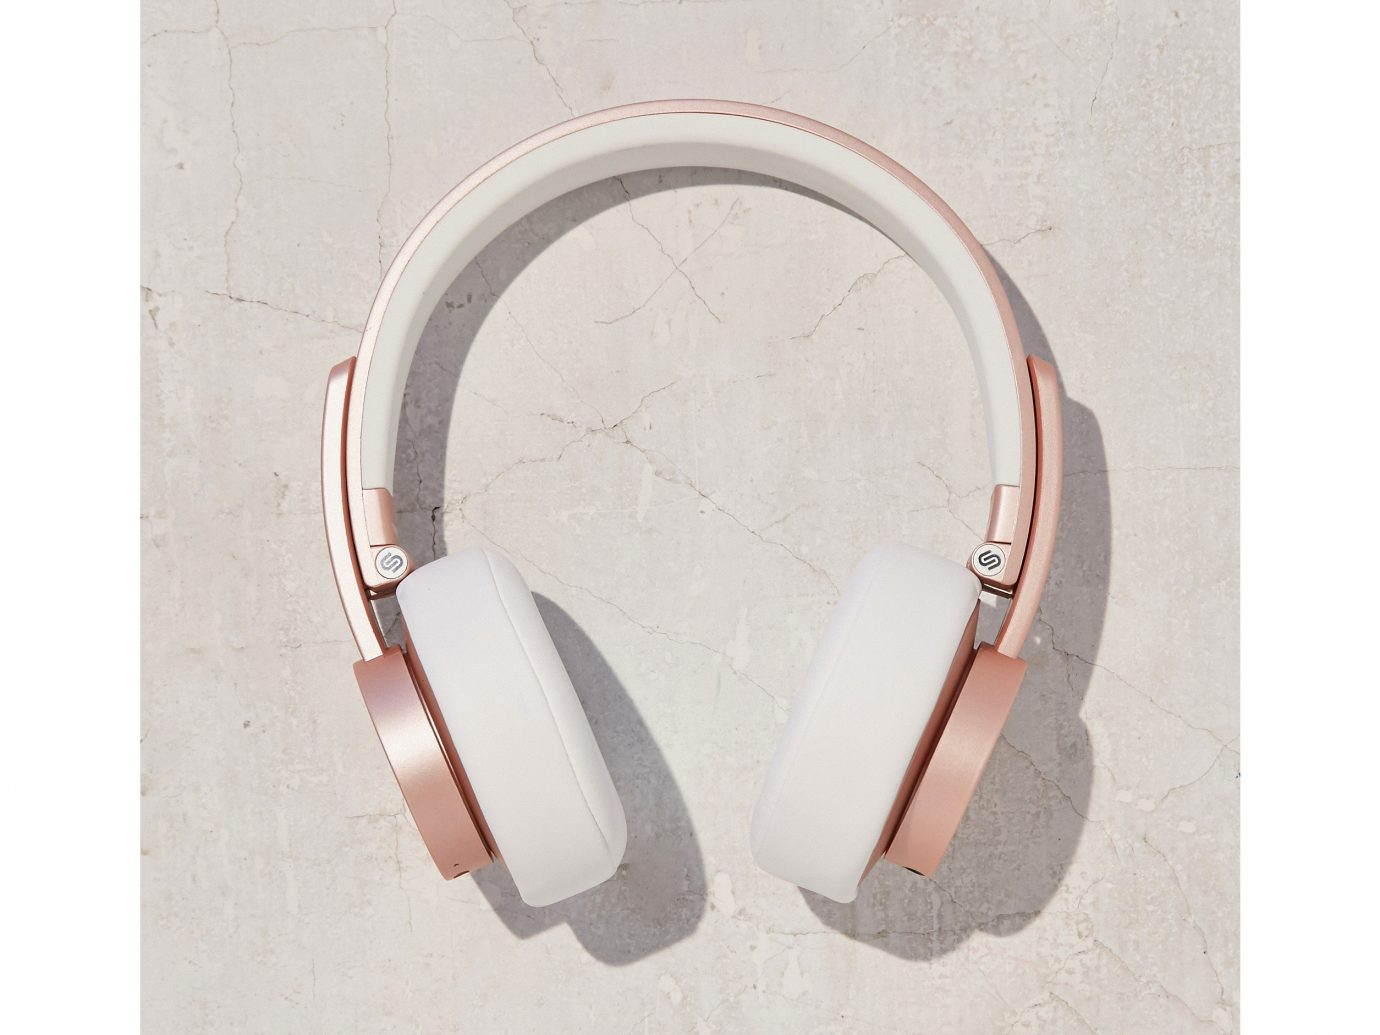 Style + Design audio equipment gadget headphones audio technology electronic device ear circle accessory